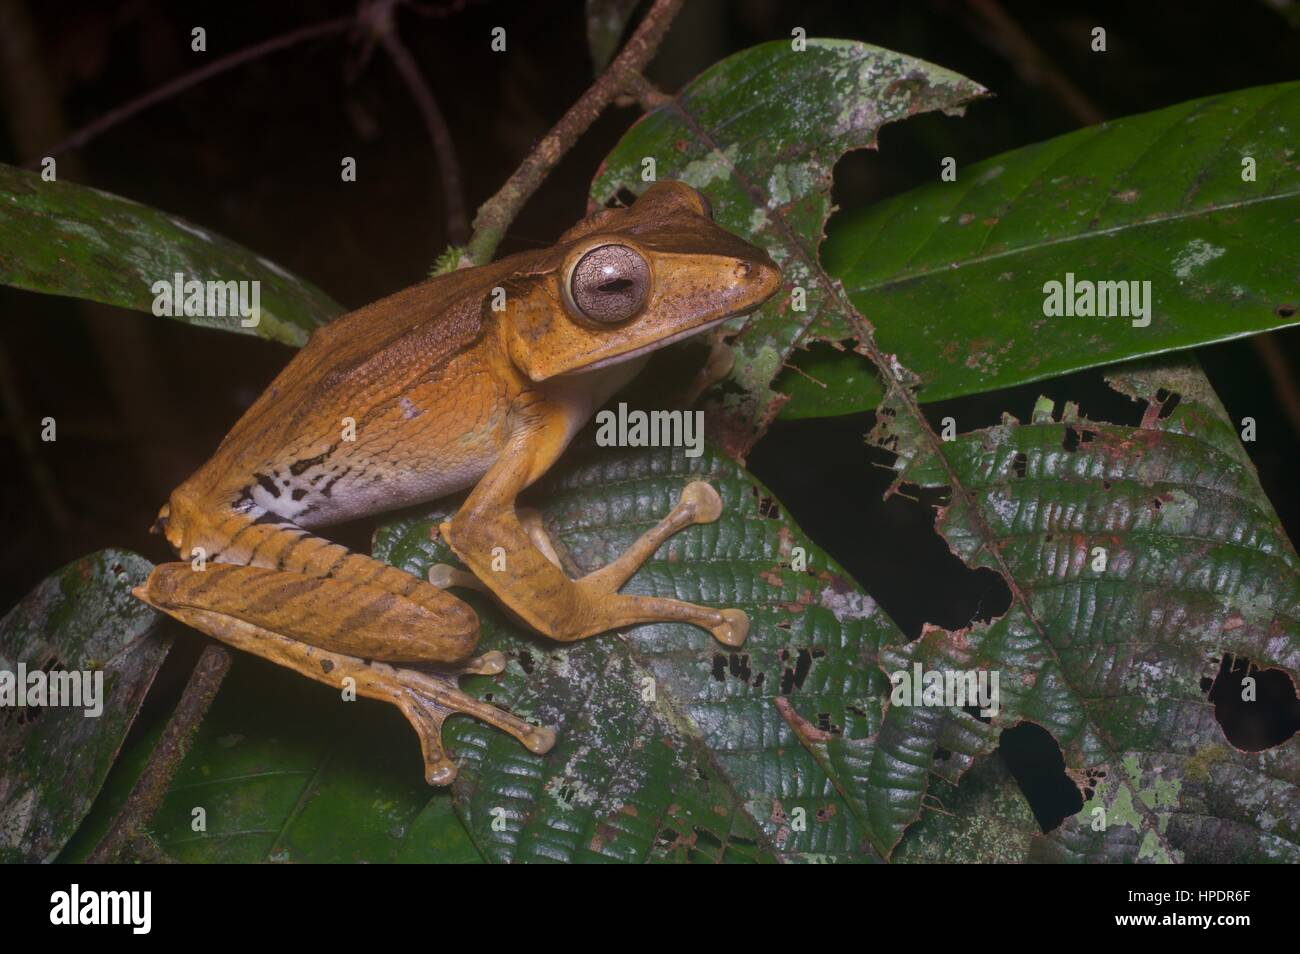 A File-eared Tree Frog (Polypedates otilophus) in the rainforest at night at Kubah National Park, Sarawak, East - Stock Image